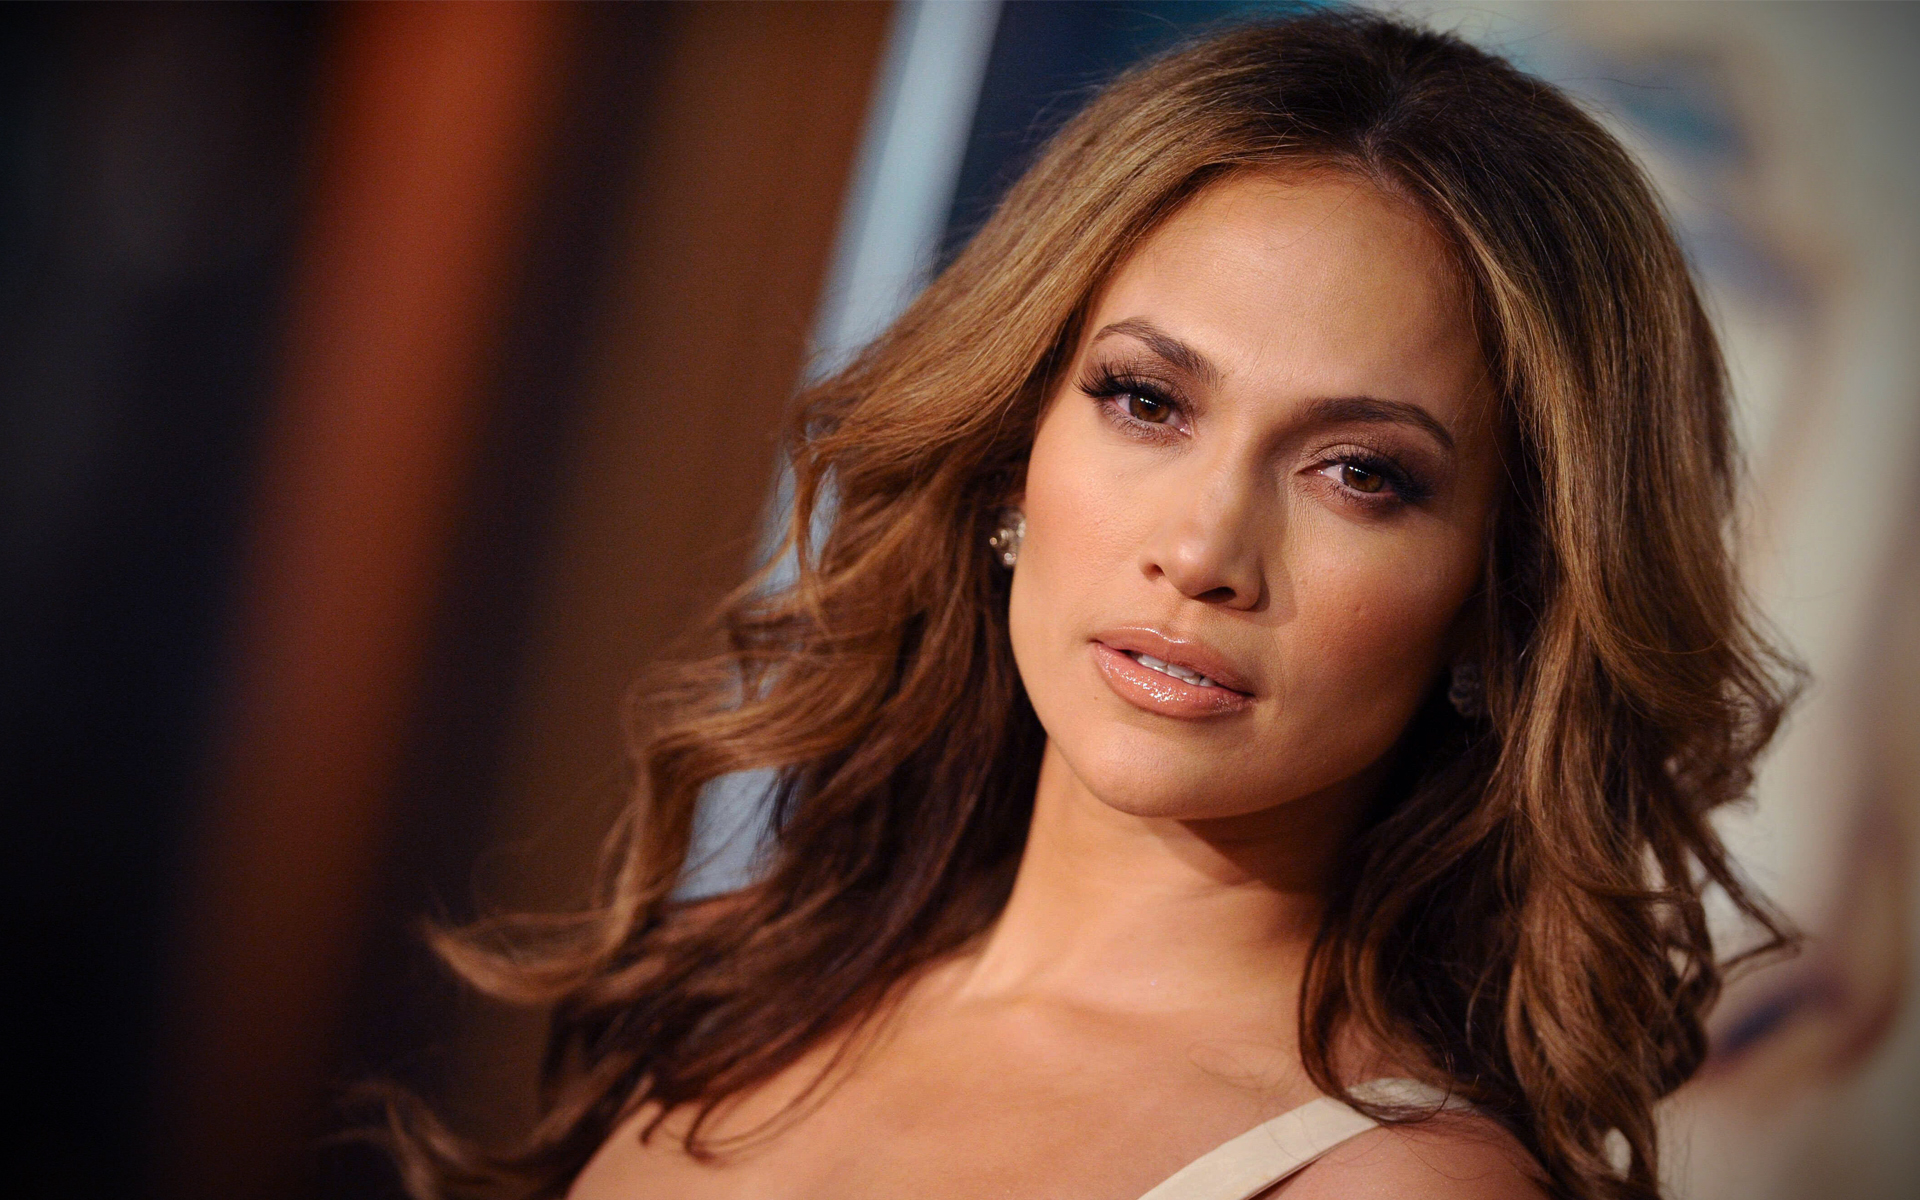 Jennifer Lopez Exotic Skin Photo Gallery Hollywood Singer Wallpaper HD Dekstop Background